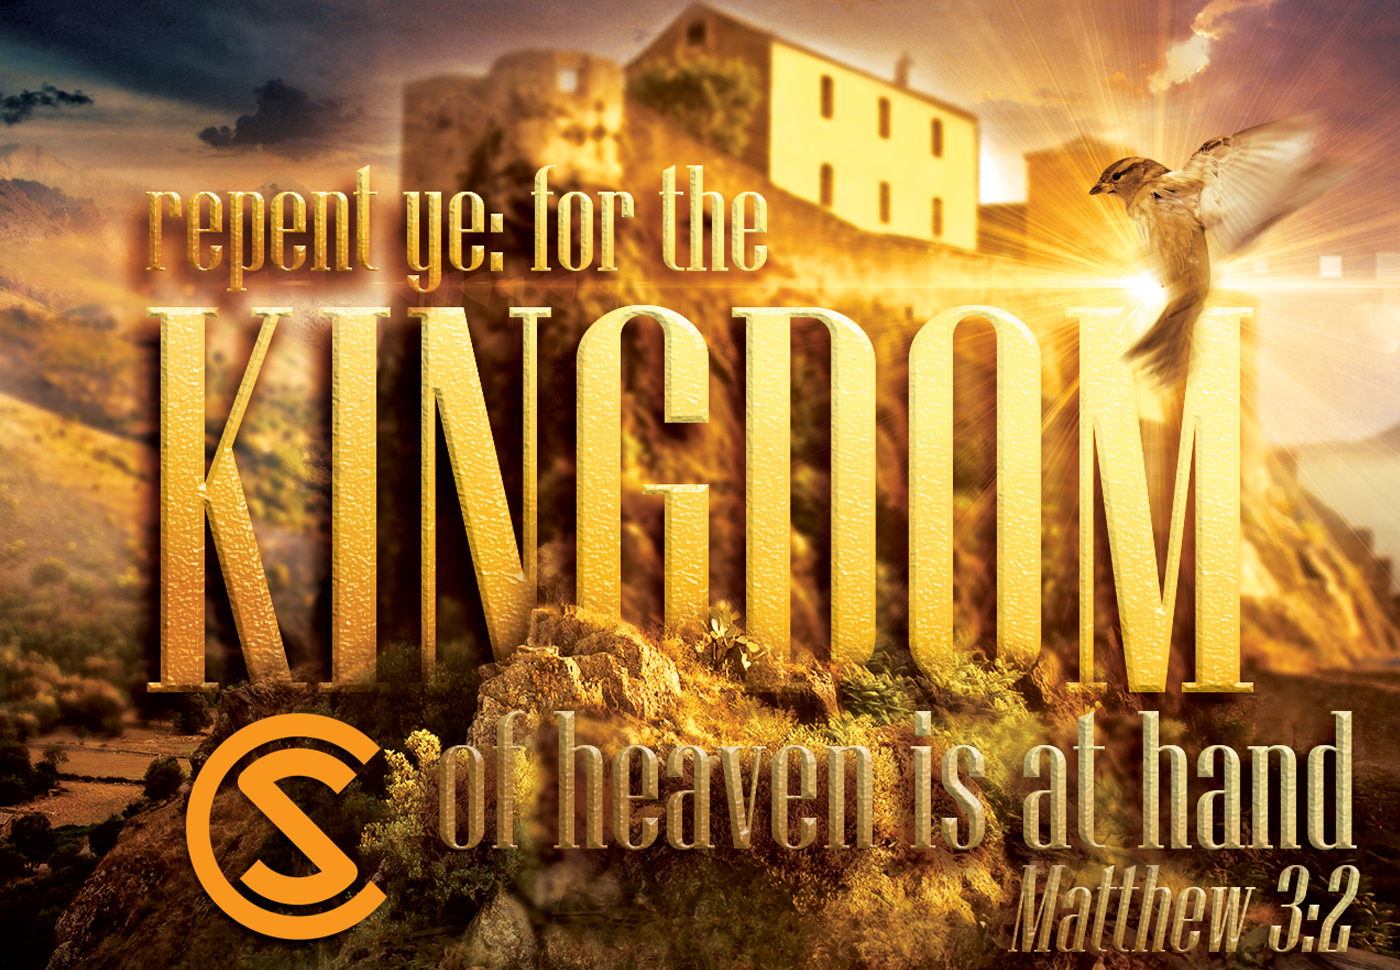 scm-Repent-Kingdom-At-Hand-web